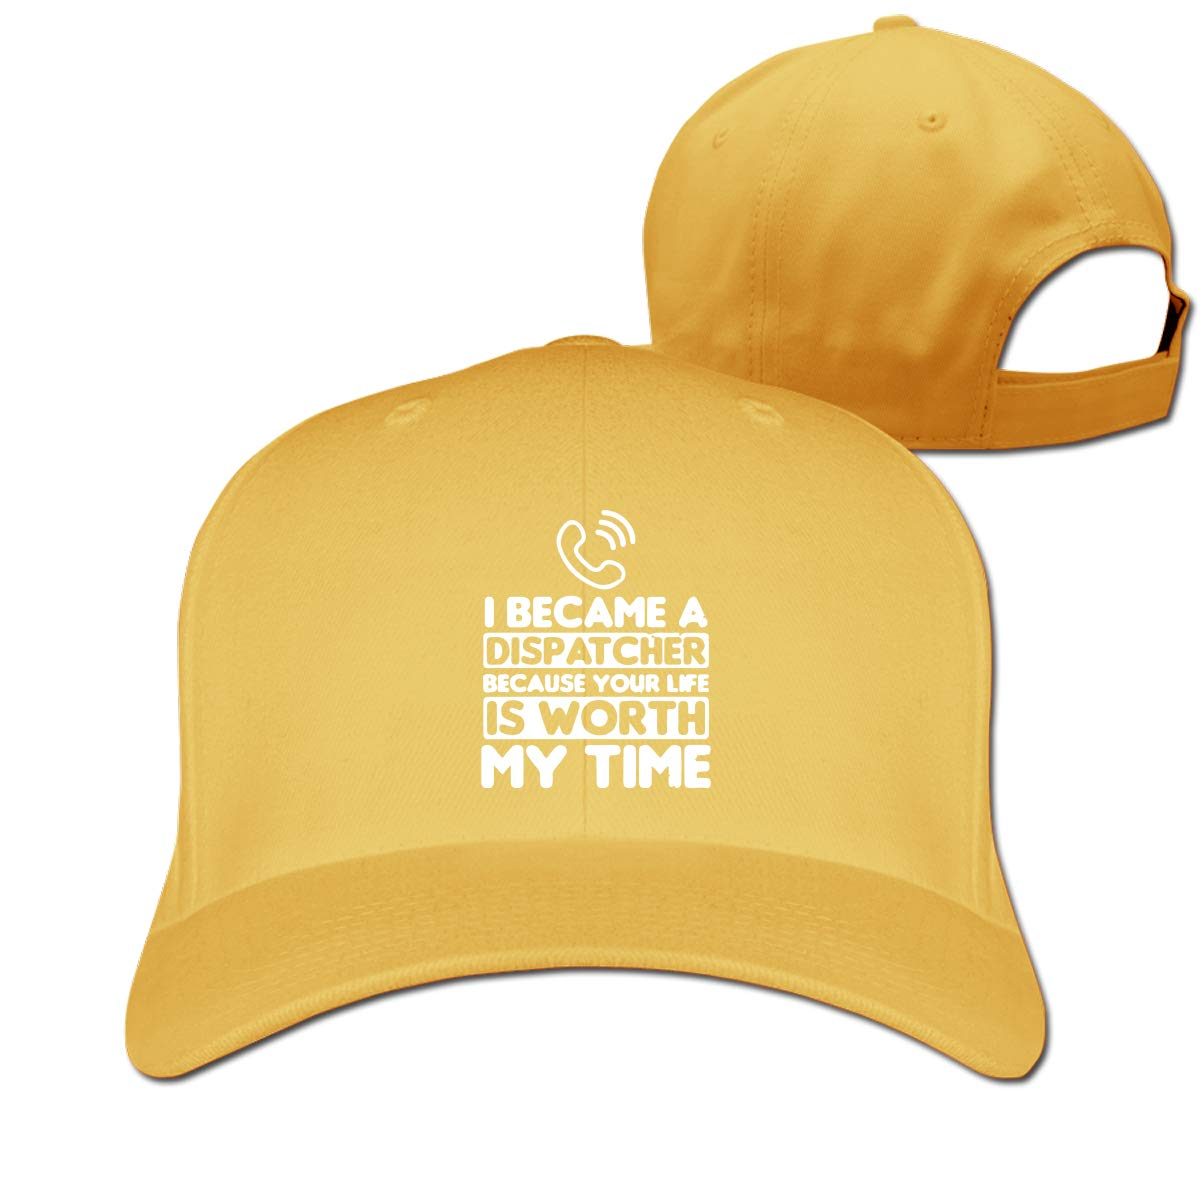 911 Your Life is Worth My Time Unisex Pure Color Baseball Cap Classic Adjustable Dad Hat